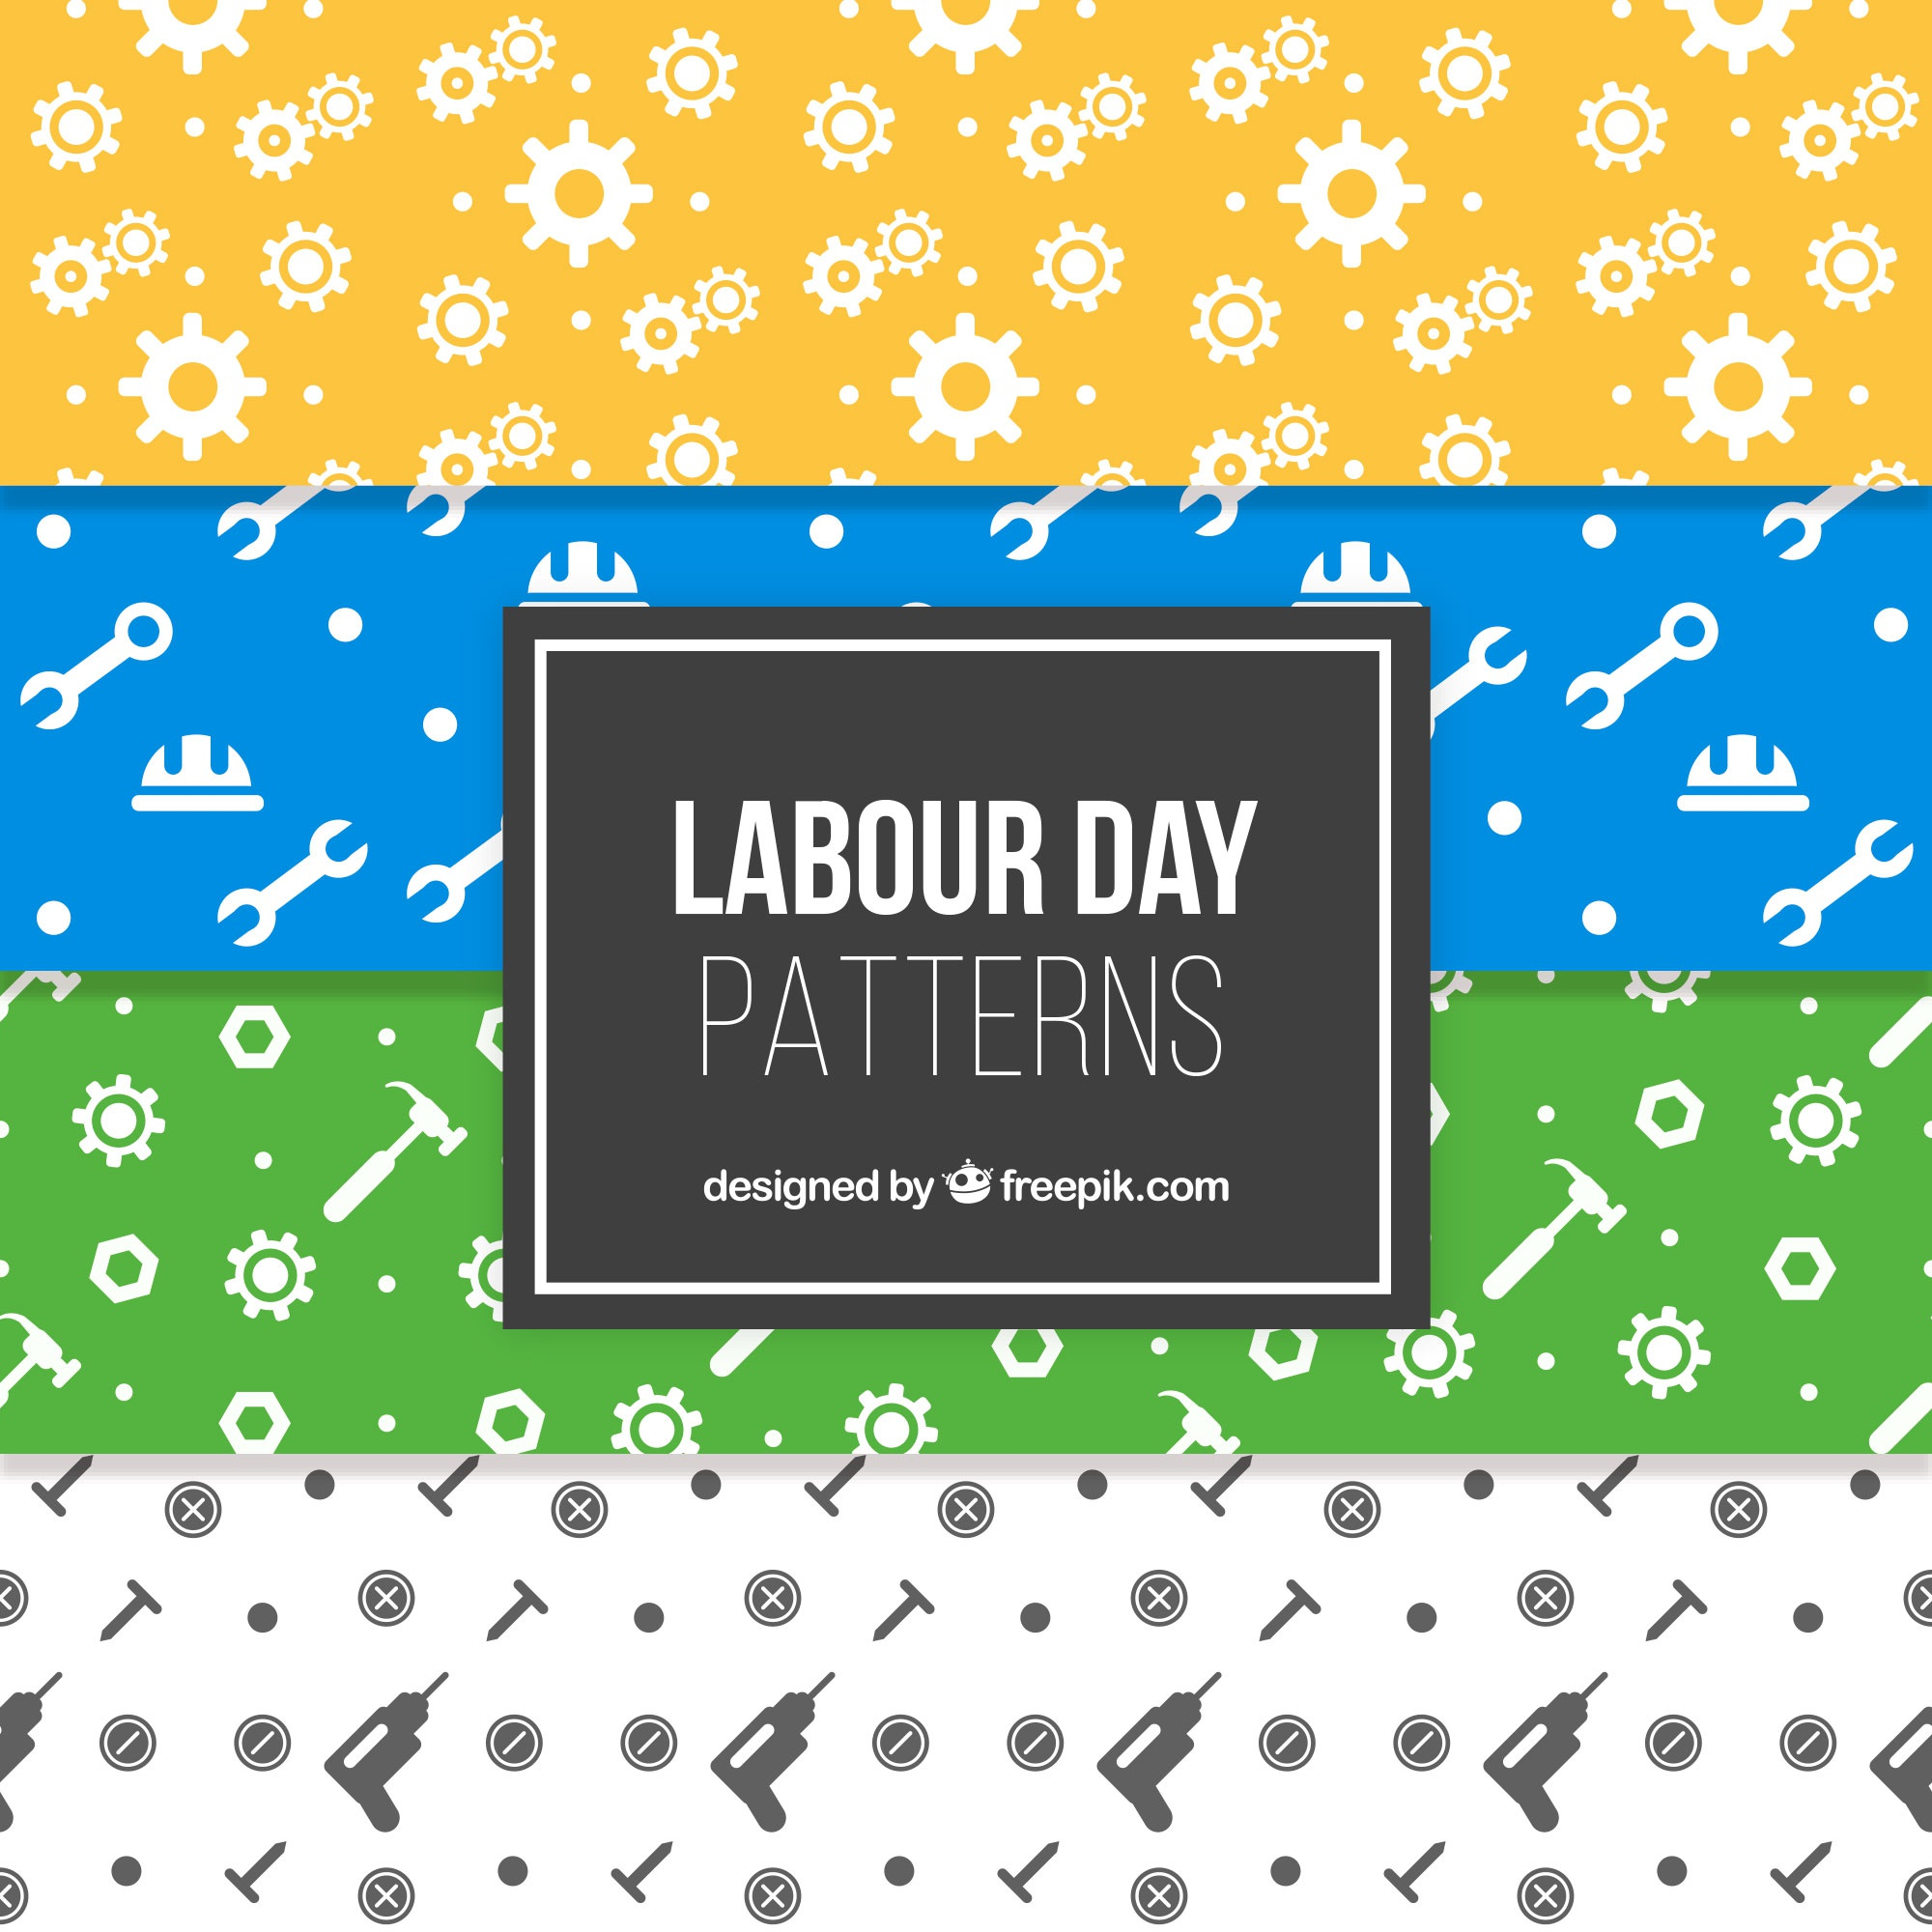 Variety of labour day patterns with tools in flat design